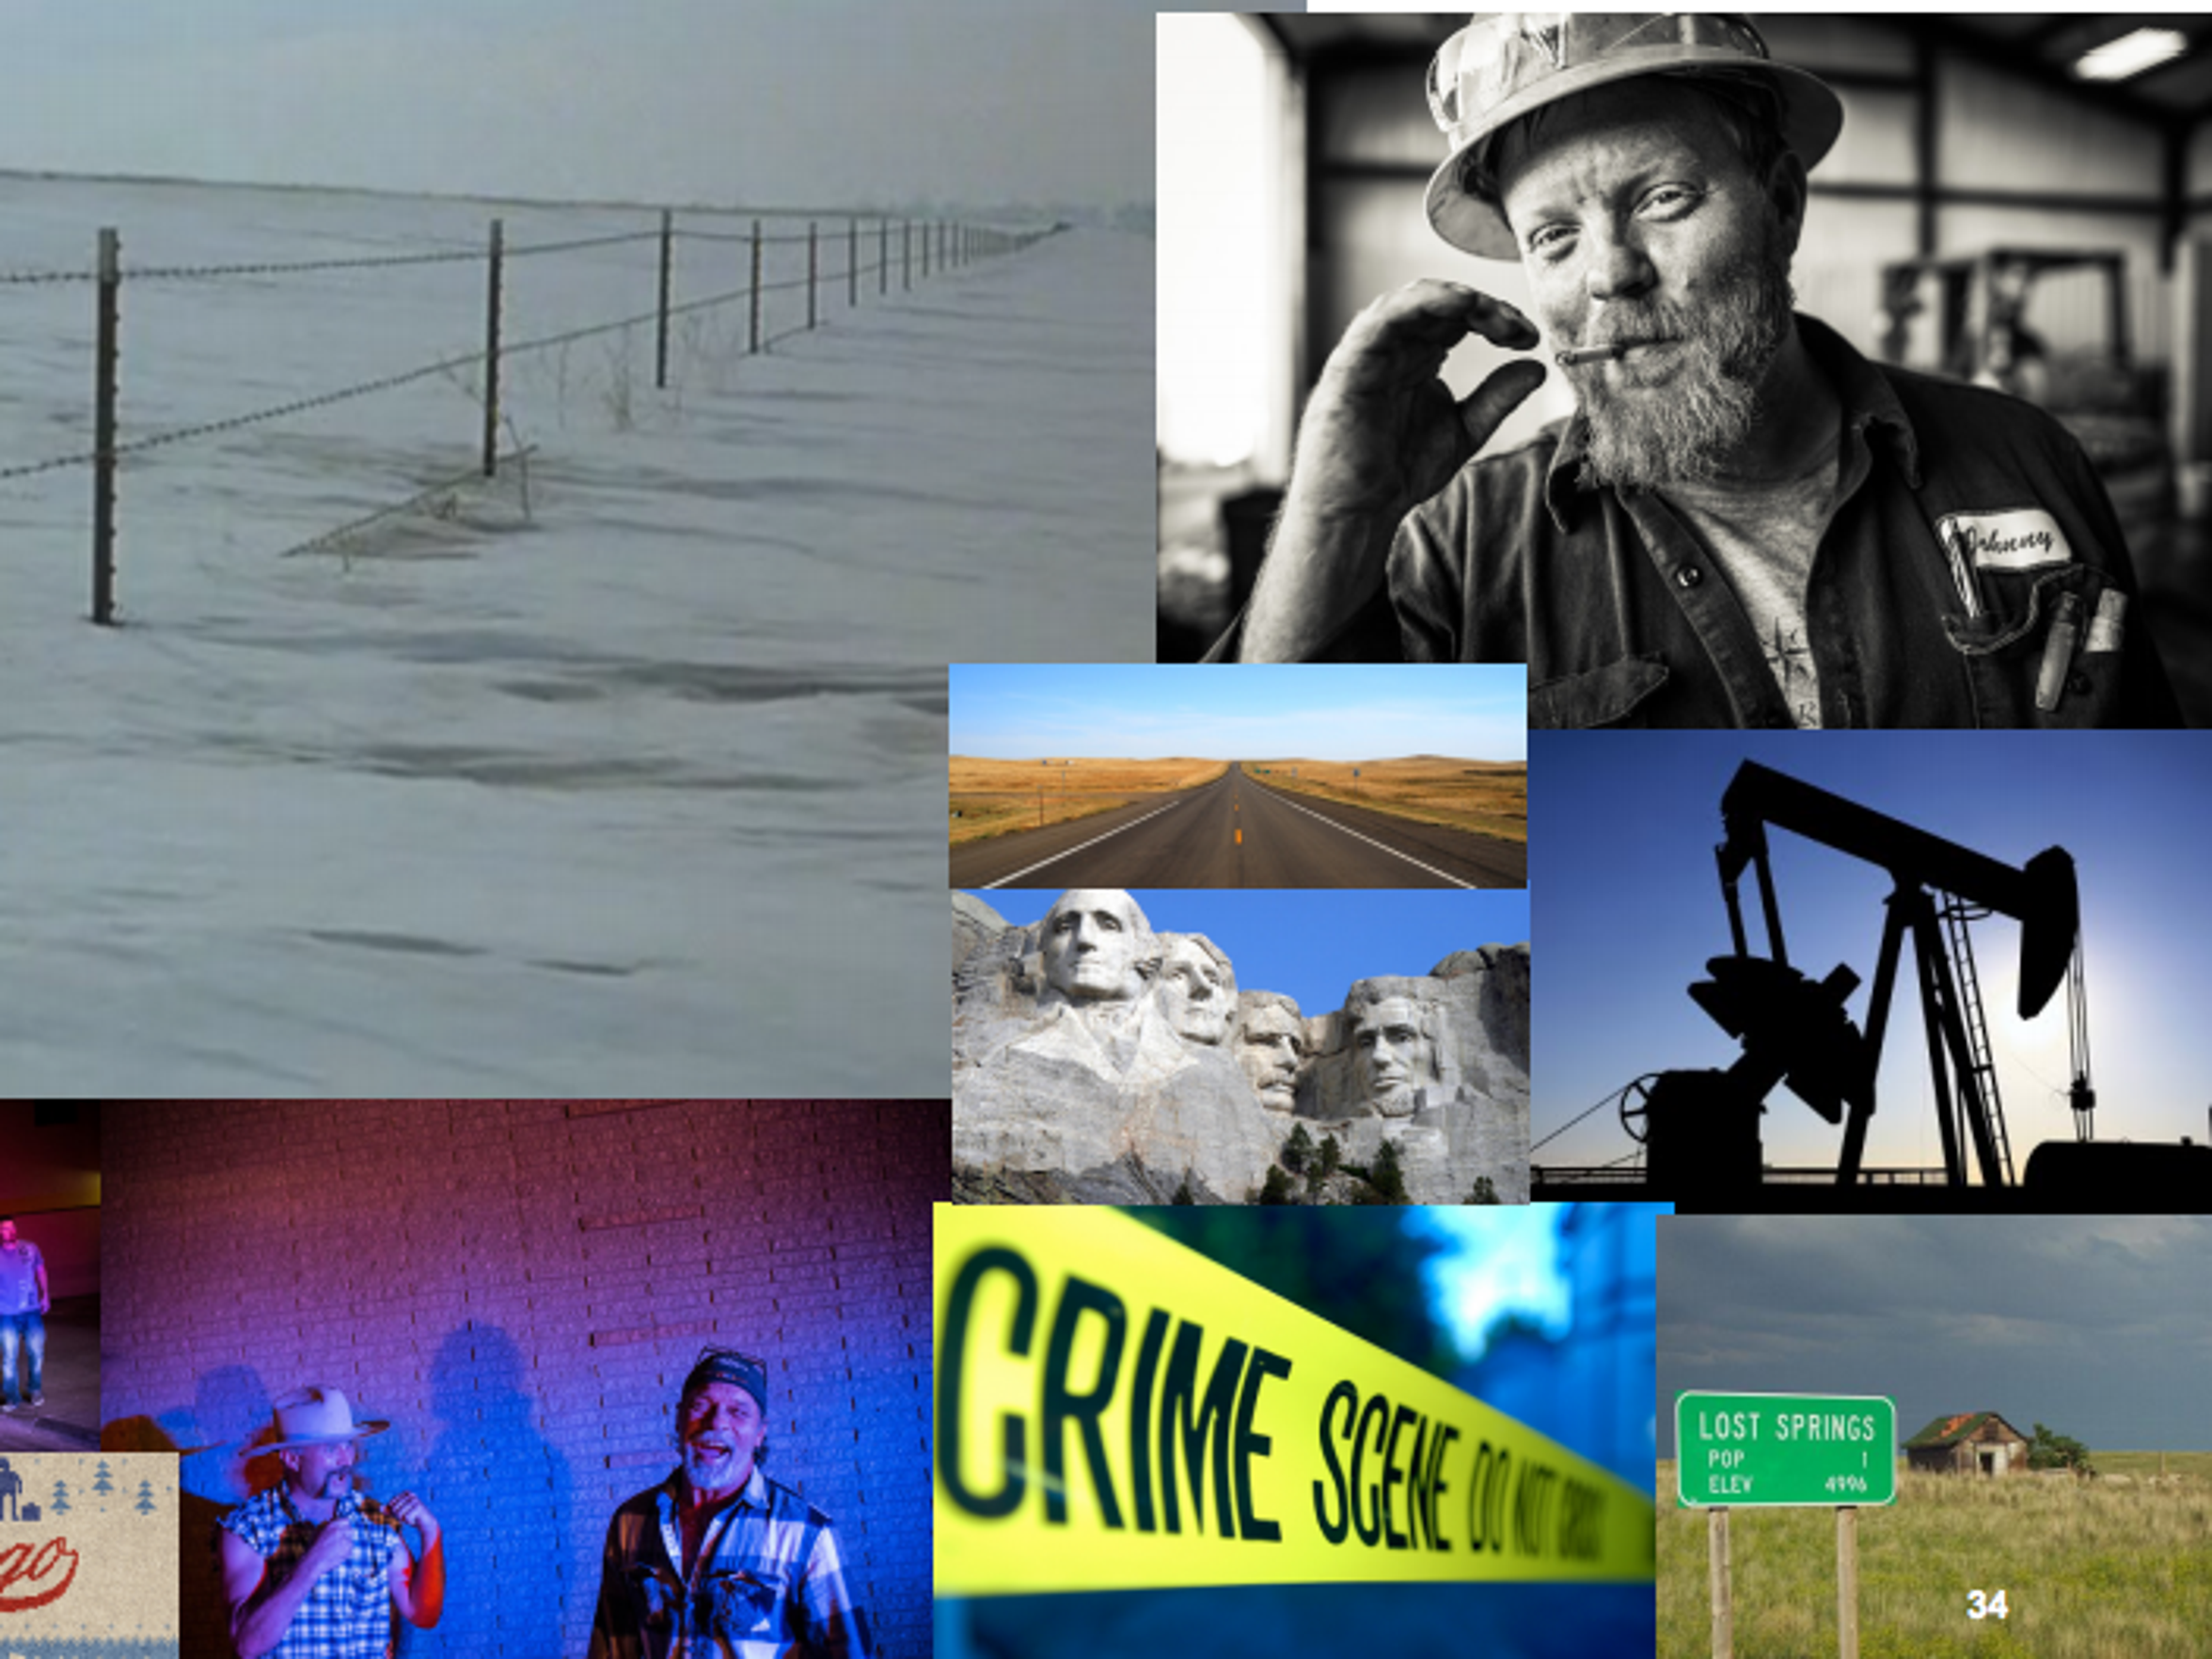 Focus group perceptions of North Dakota